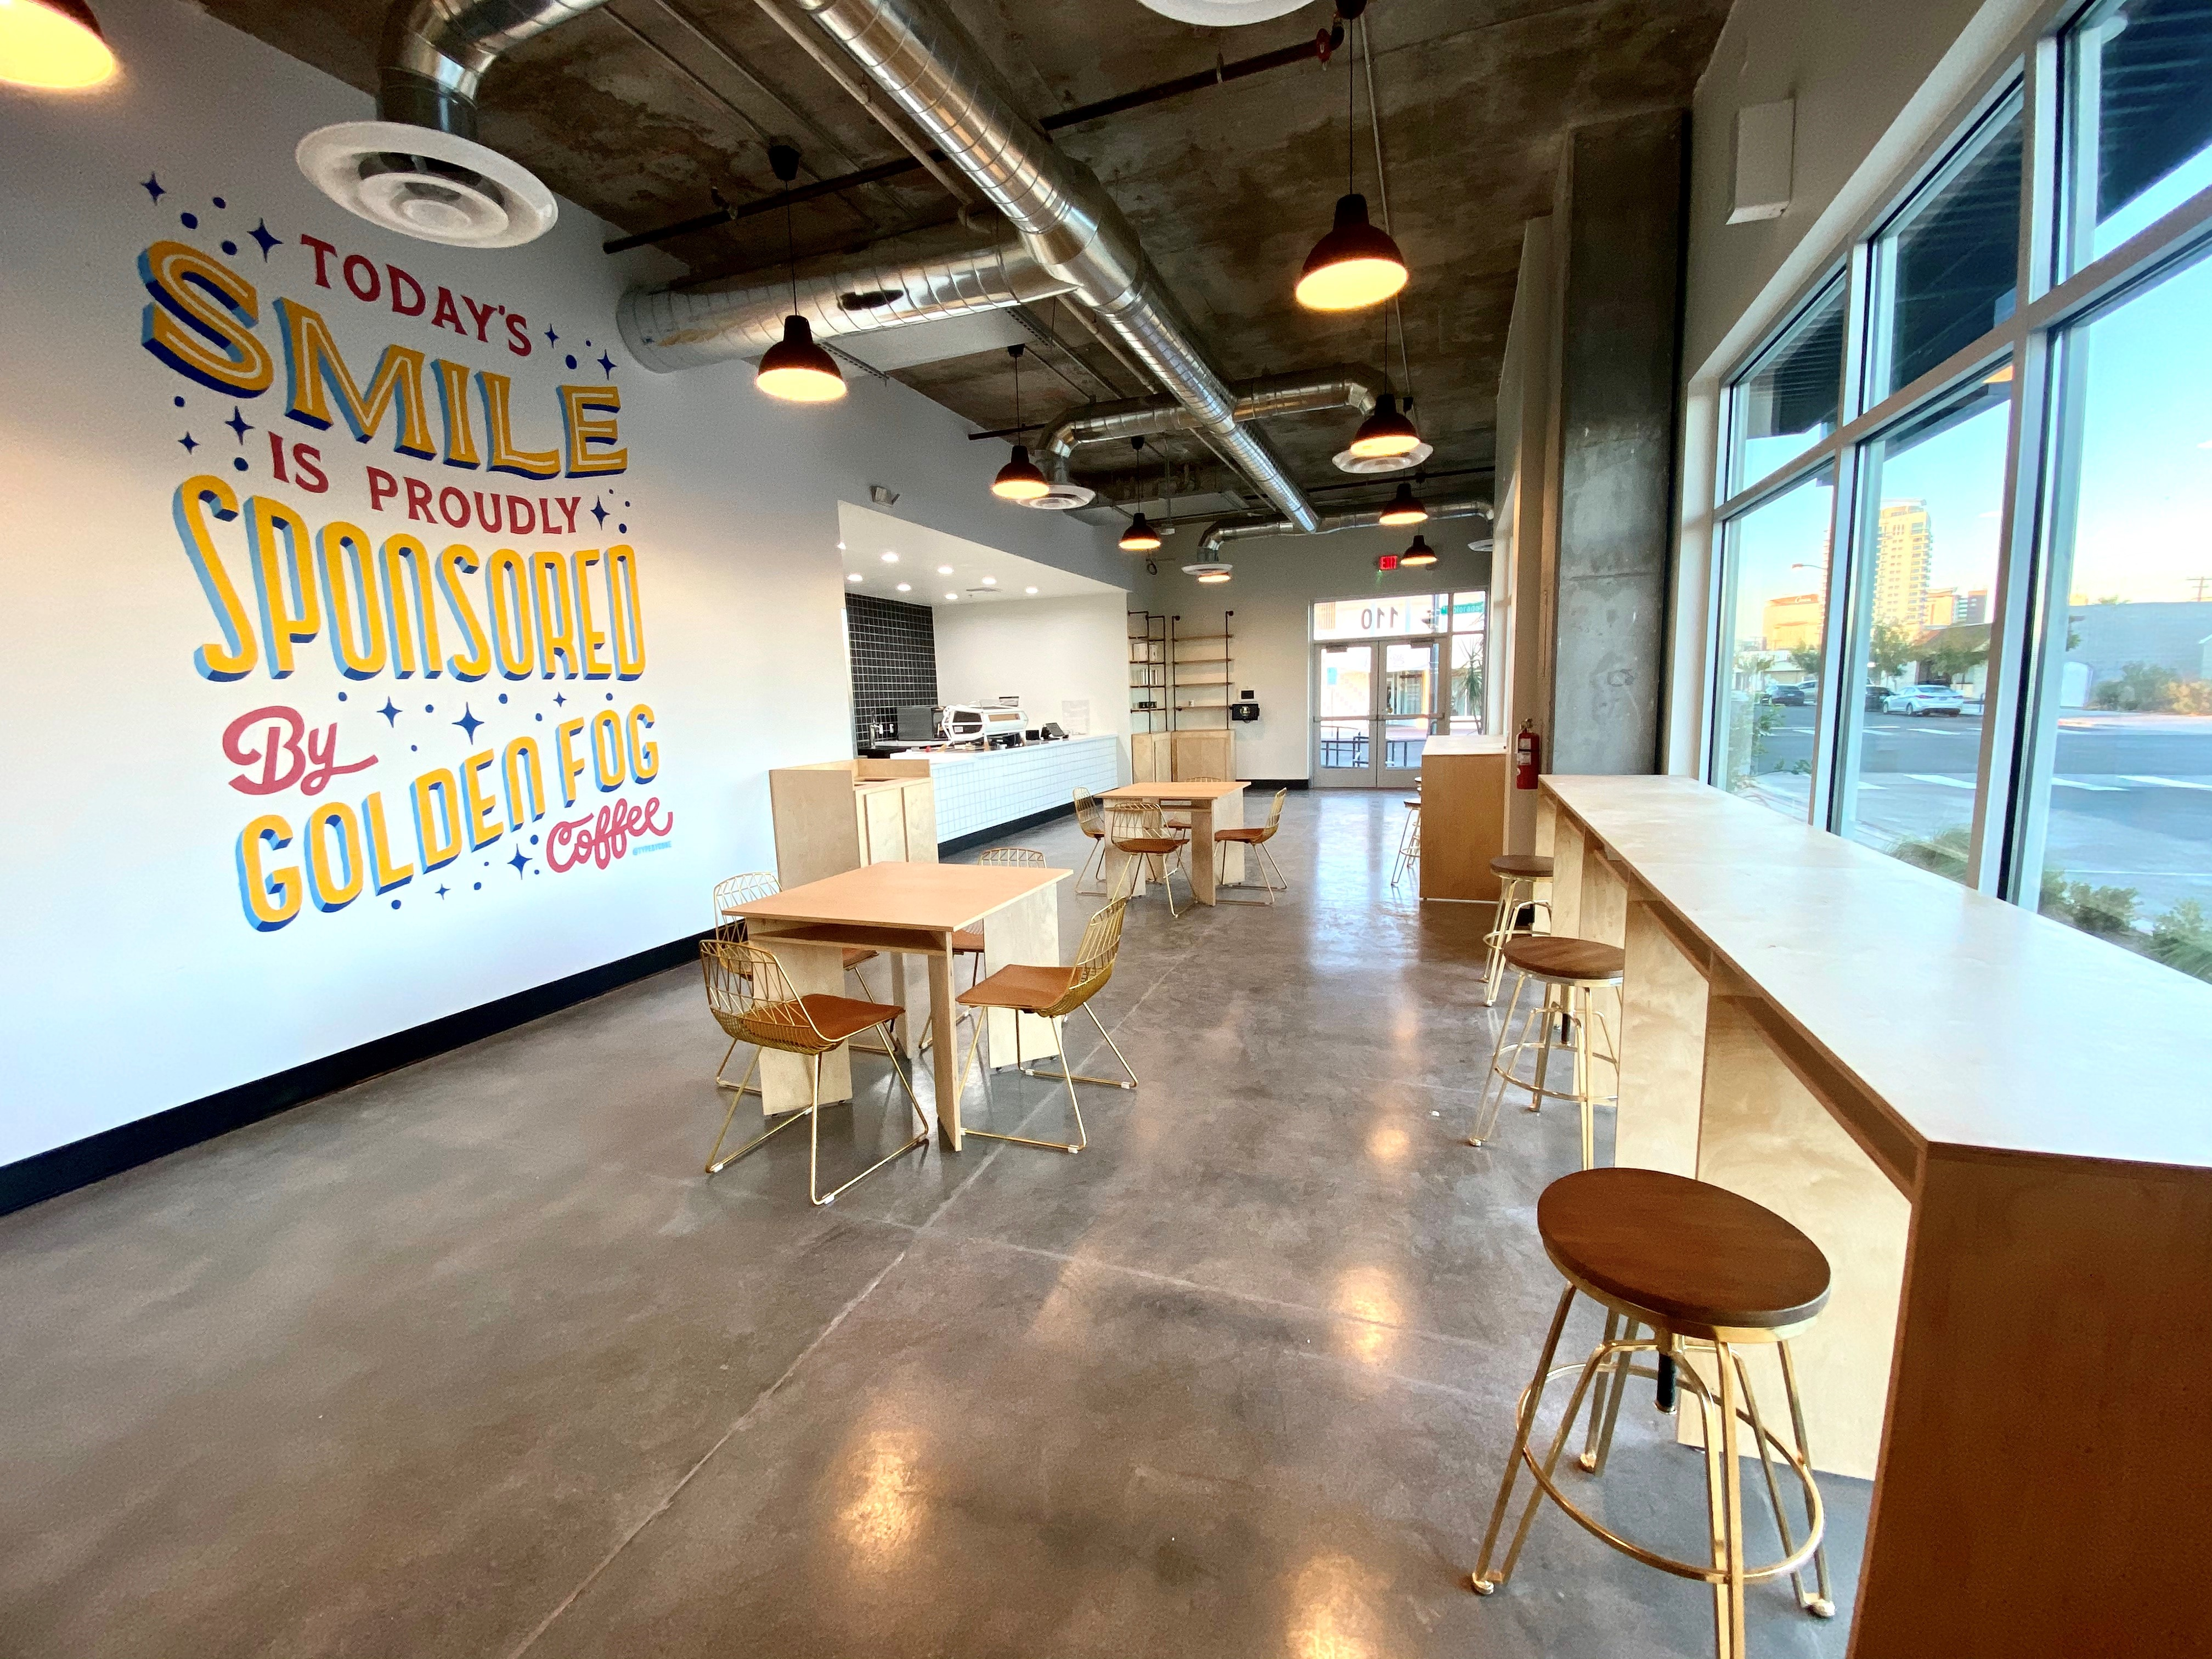 The interior of a coffee shop with wood floors and a mural on the wall.